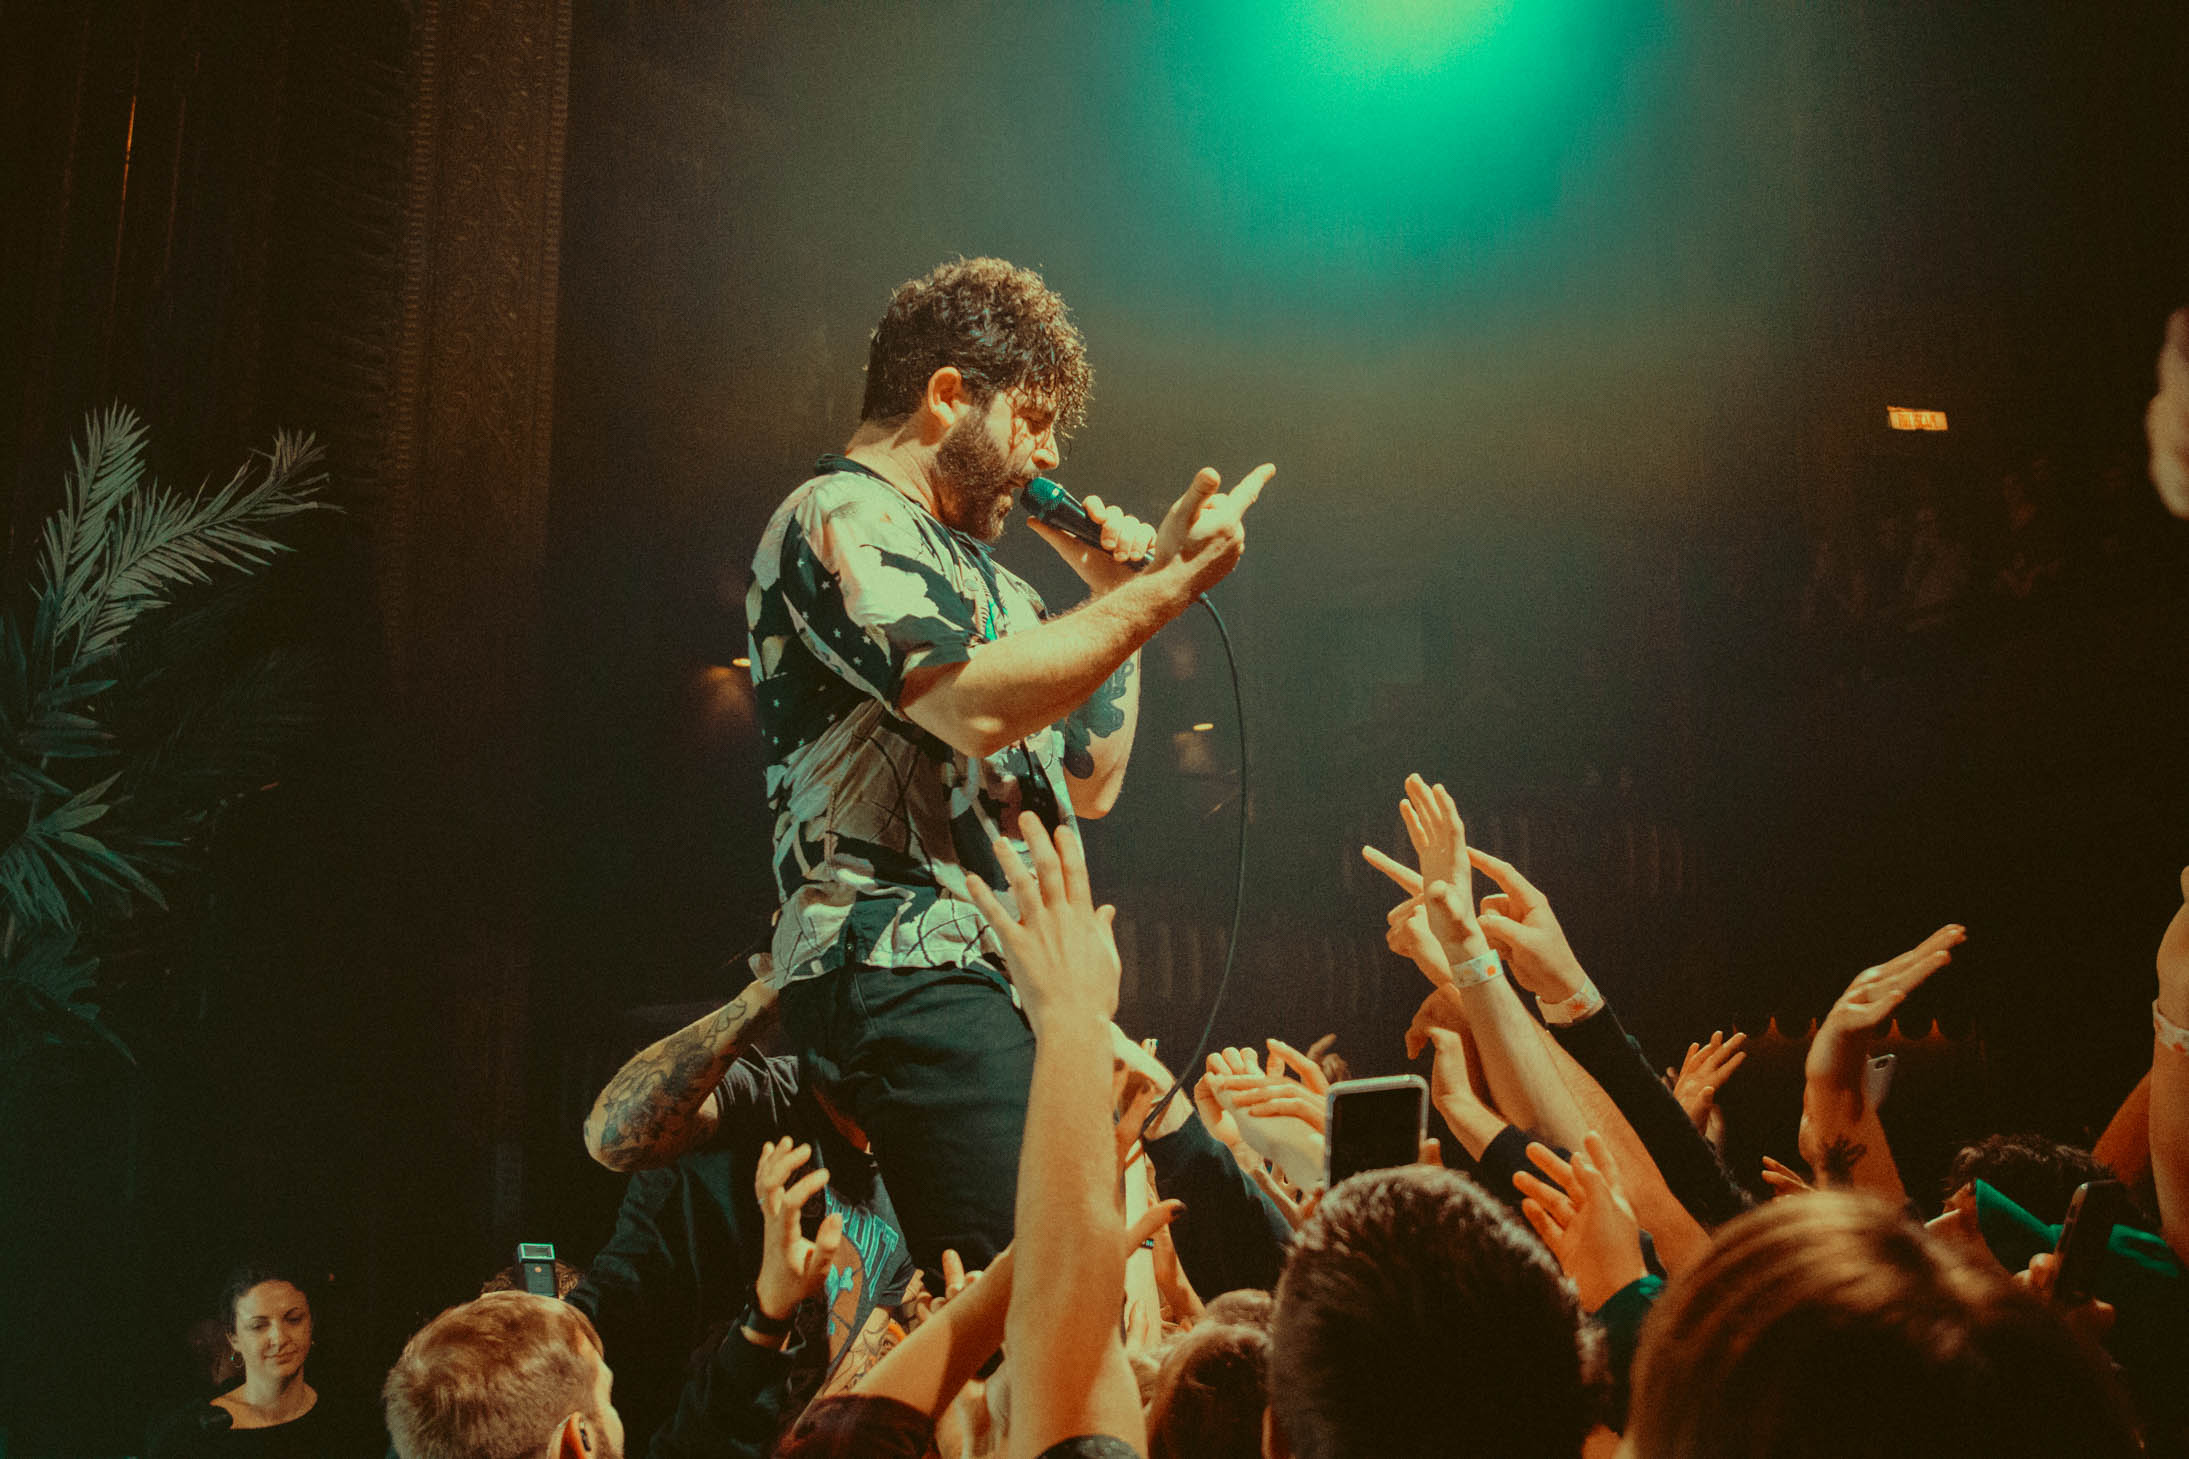 Foals' sold out Chicago show was flawless for so many reasons